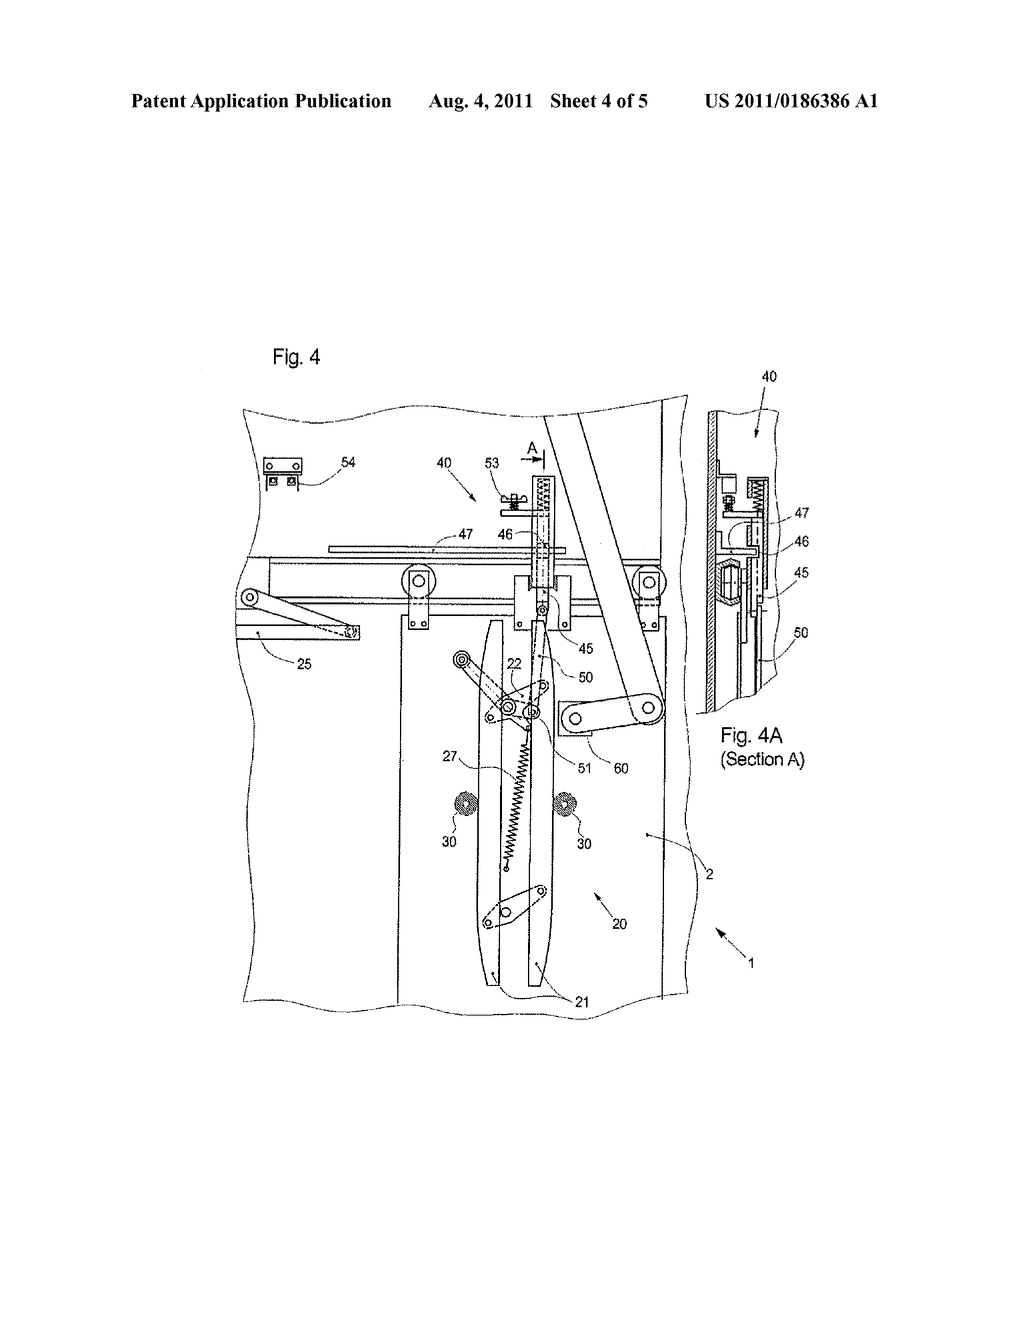 hight resolution of elevator door system comprising a car door locking mechanism diagram schematic and image 05